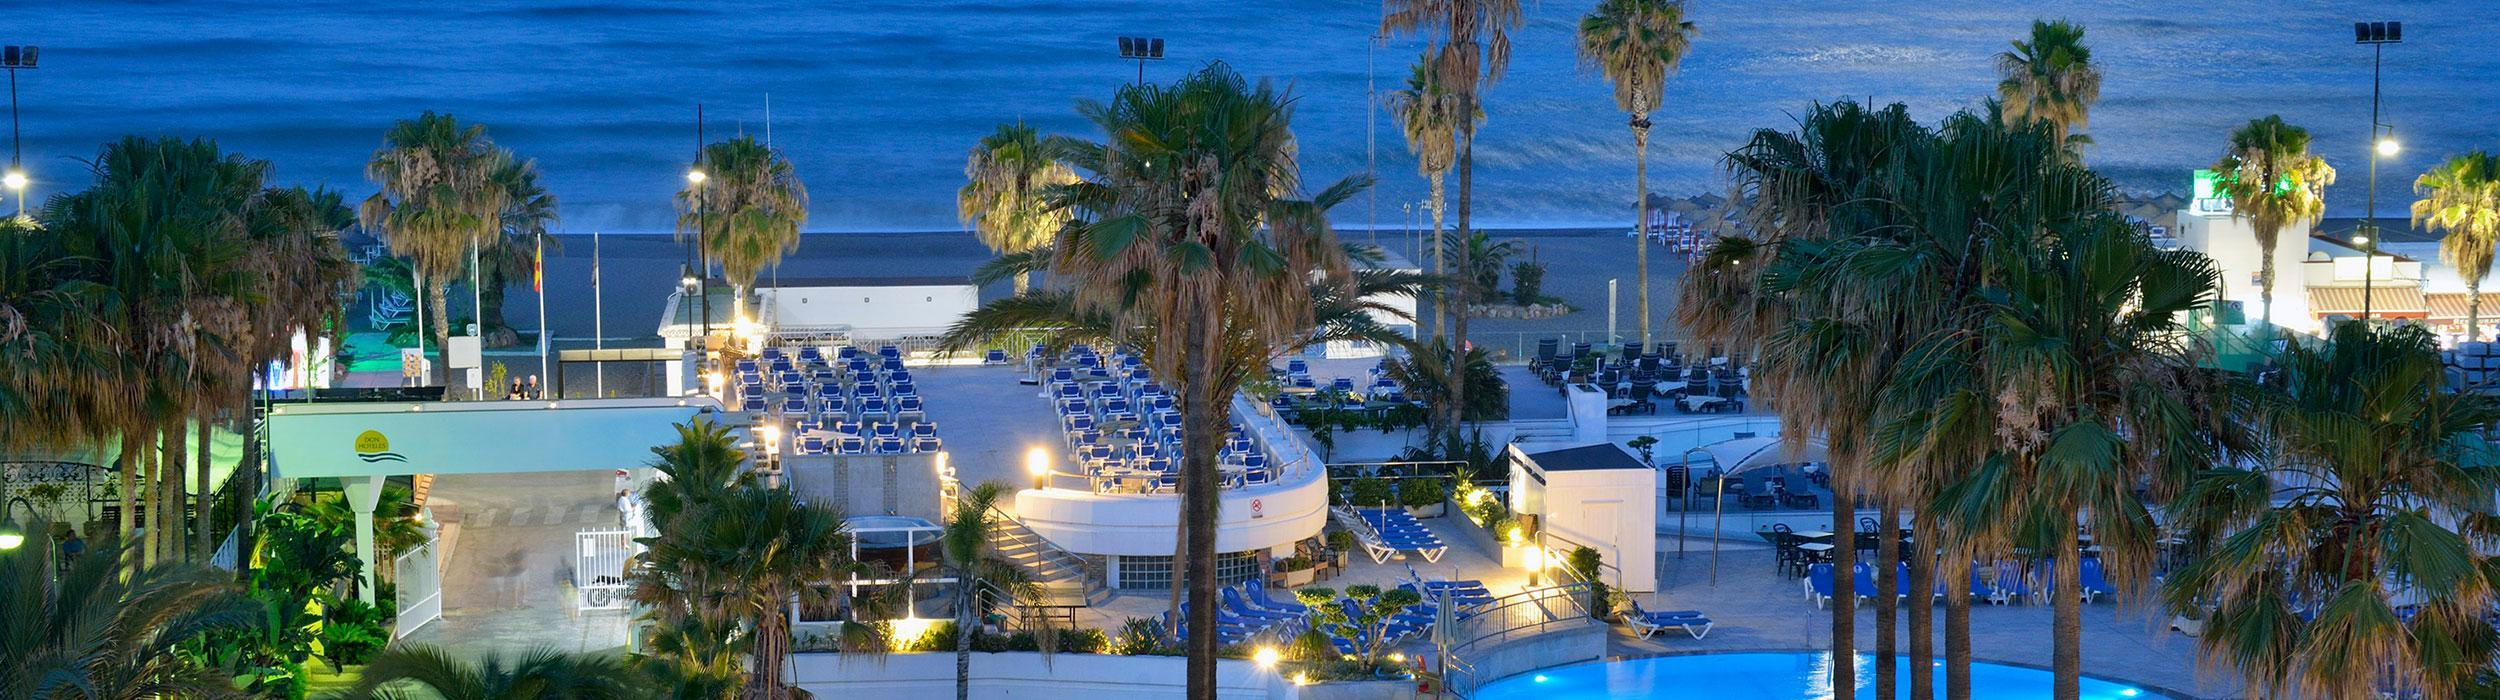 COSTA DEL SOL, HOTEL SOL DON PABLO - 7 NIGHTS B&B 12TH MAY